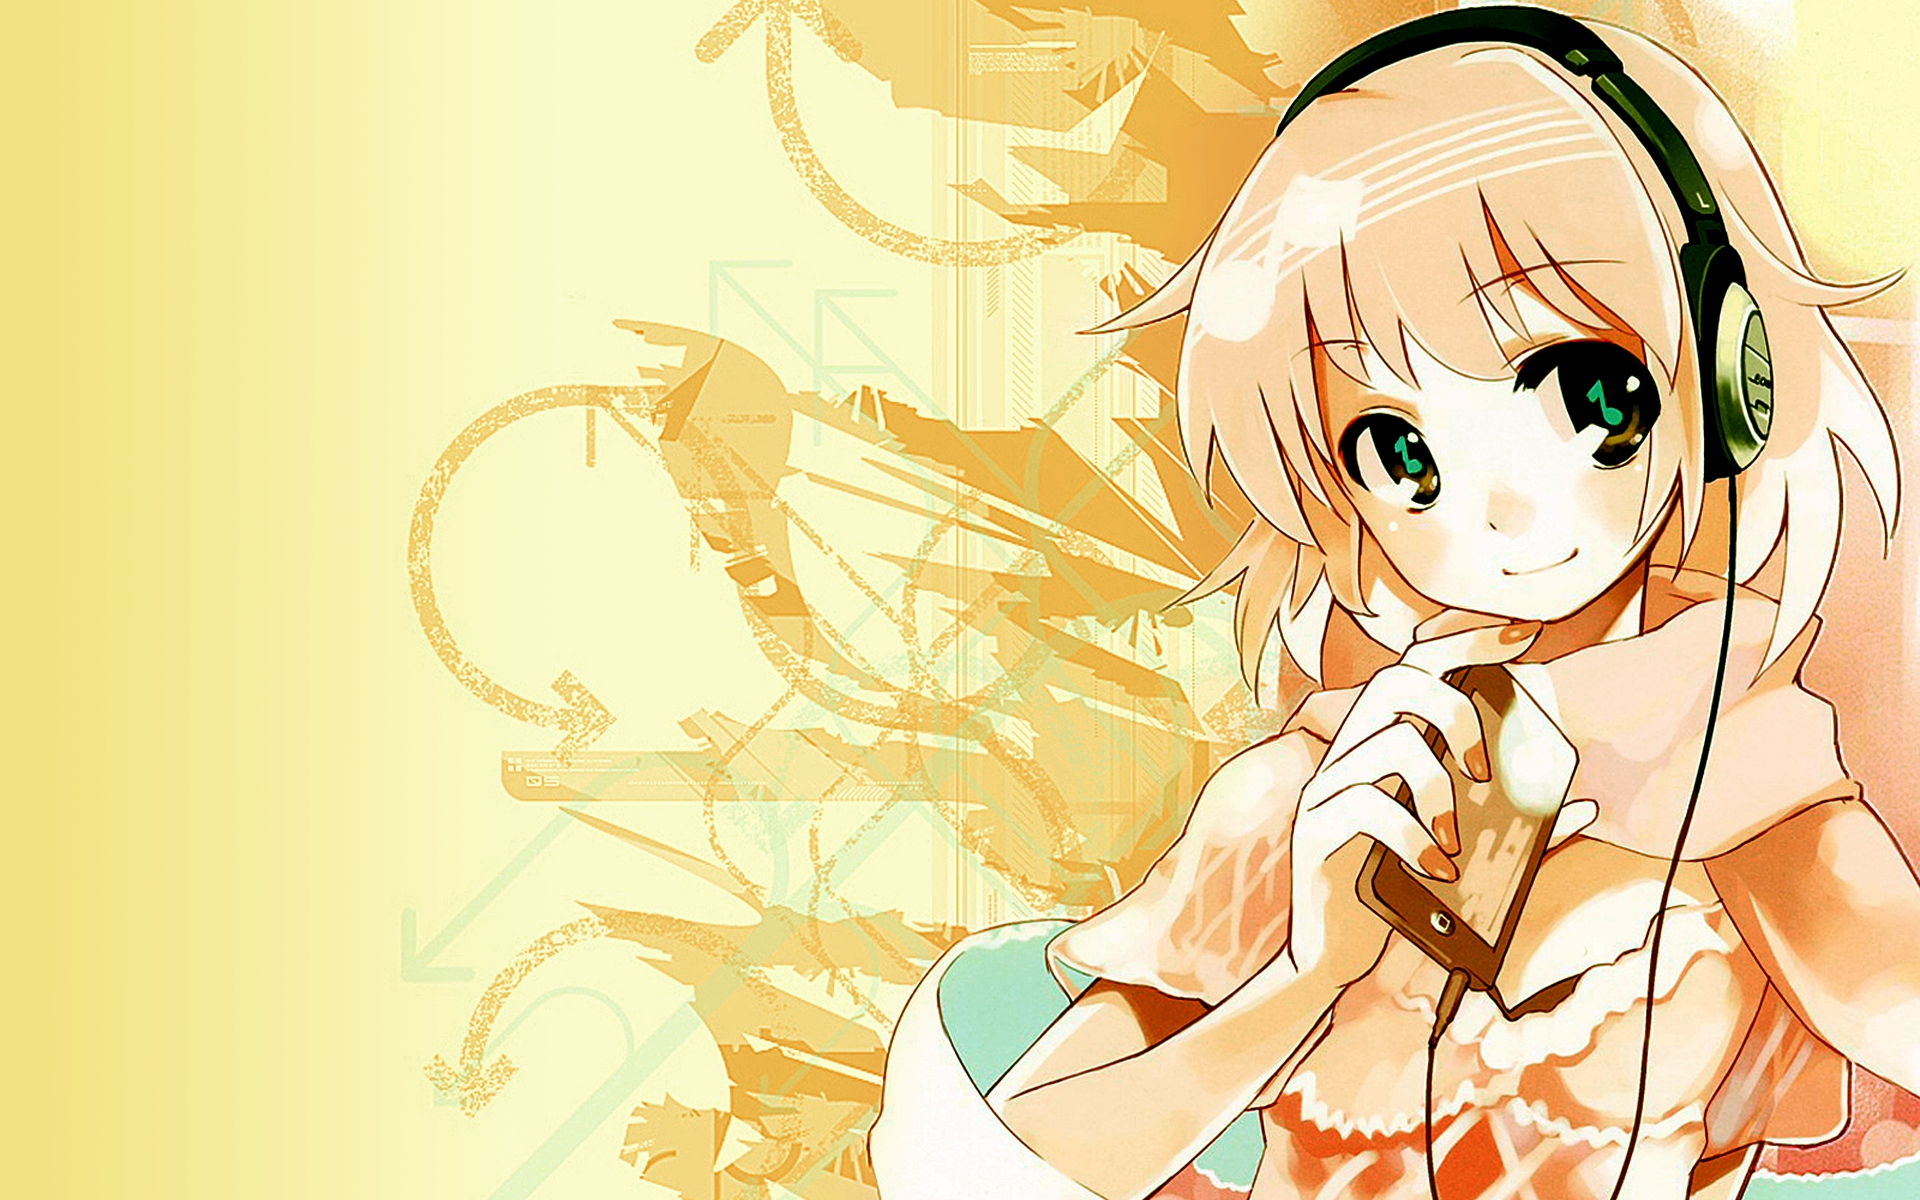 Anime - Headphones Wallpaper